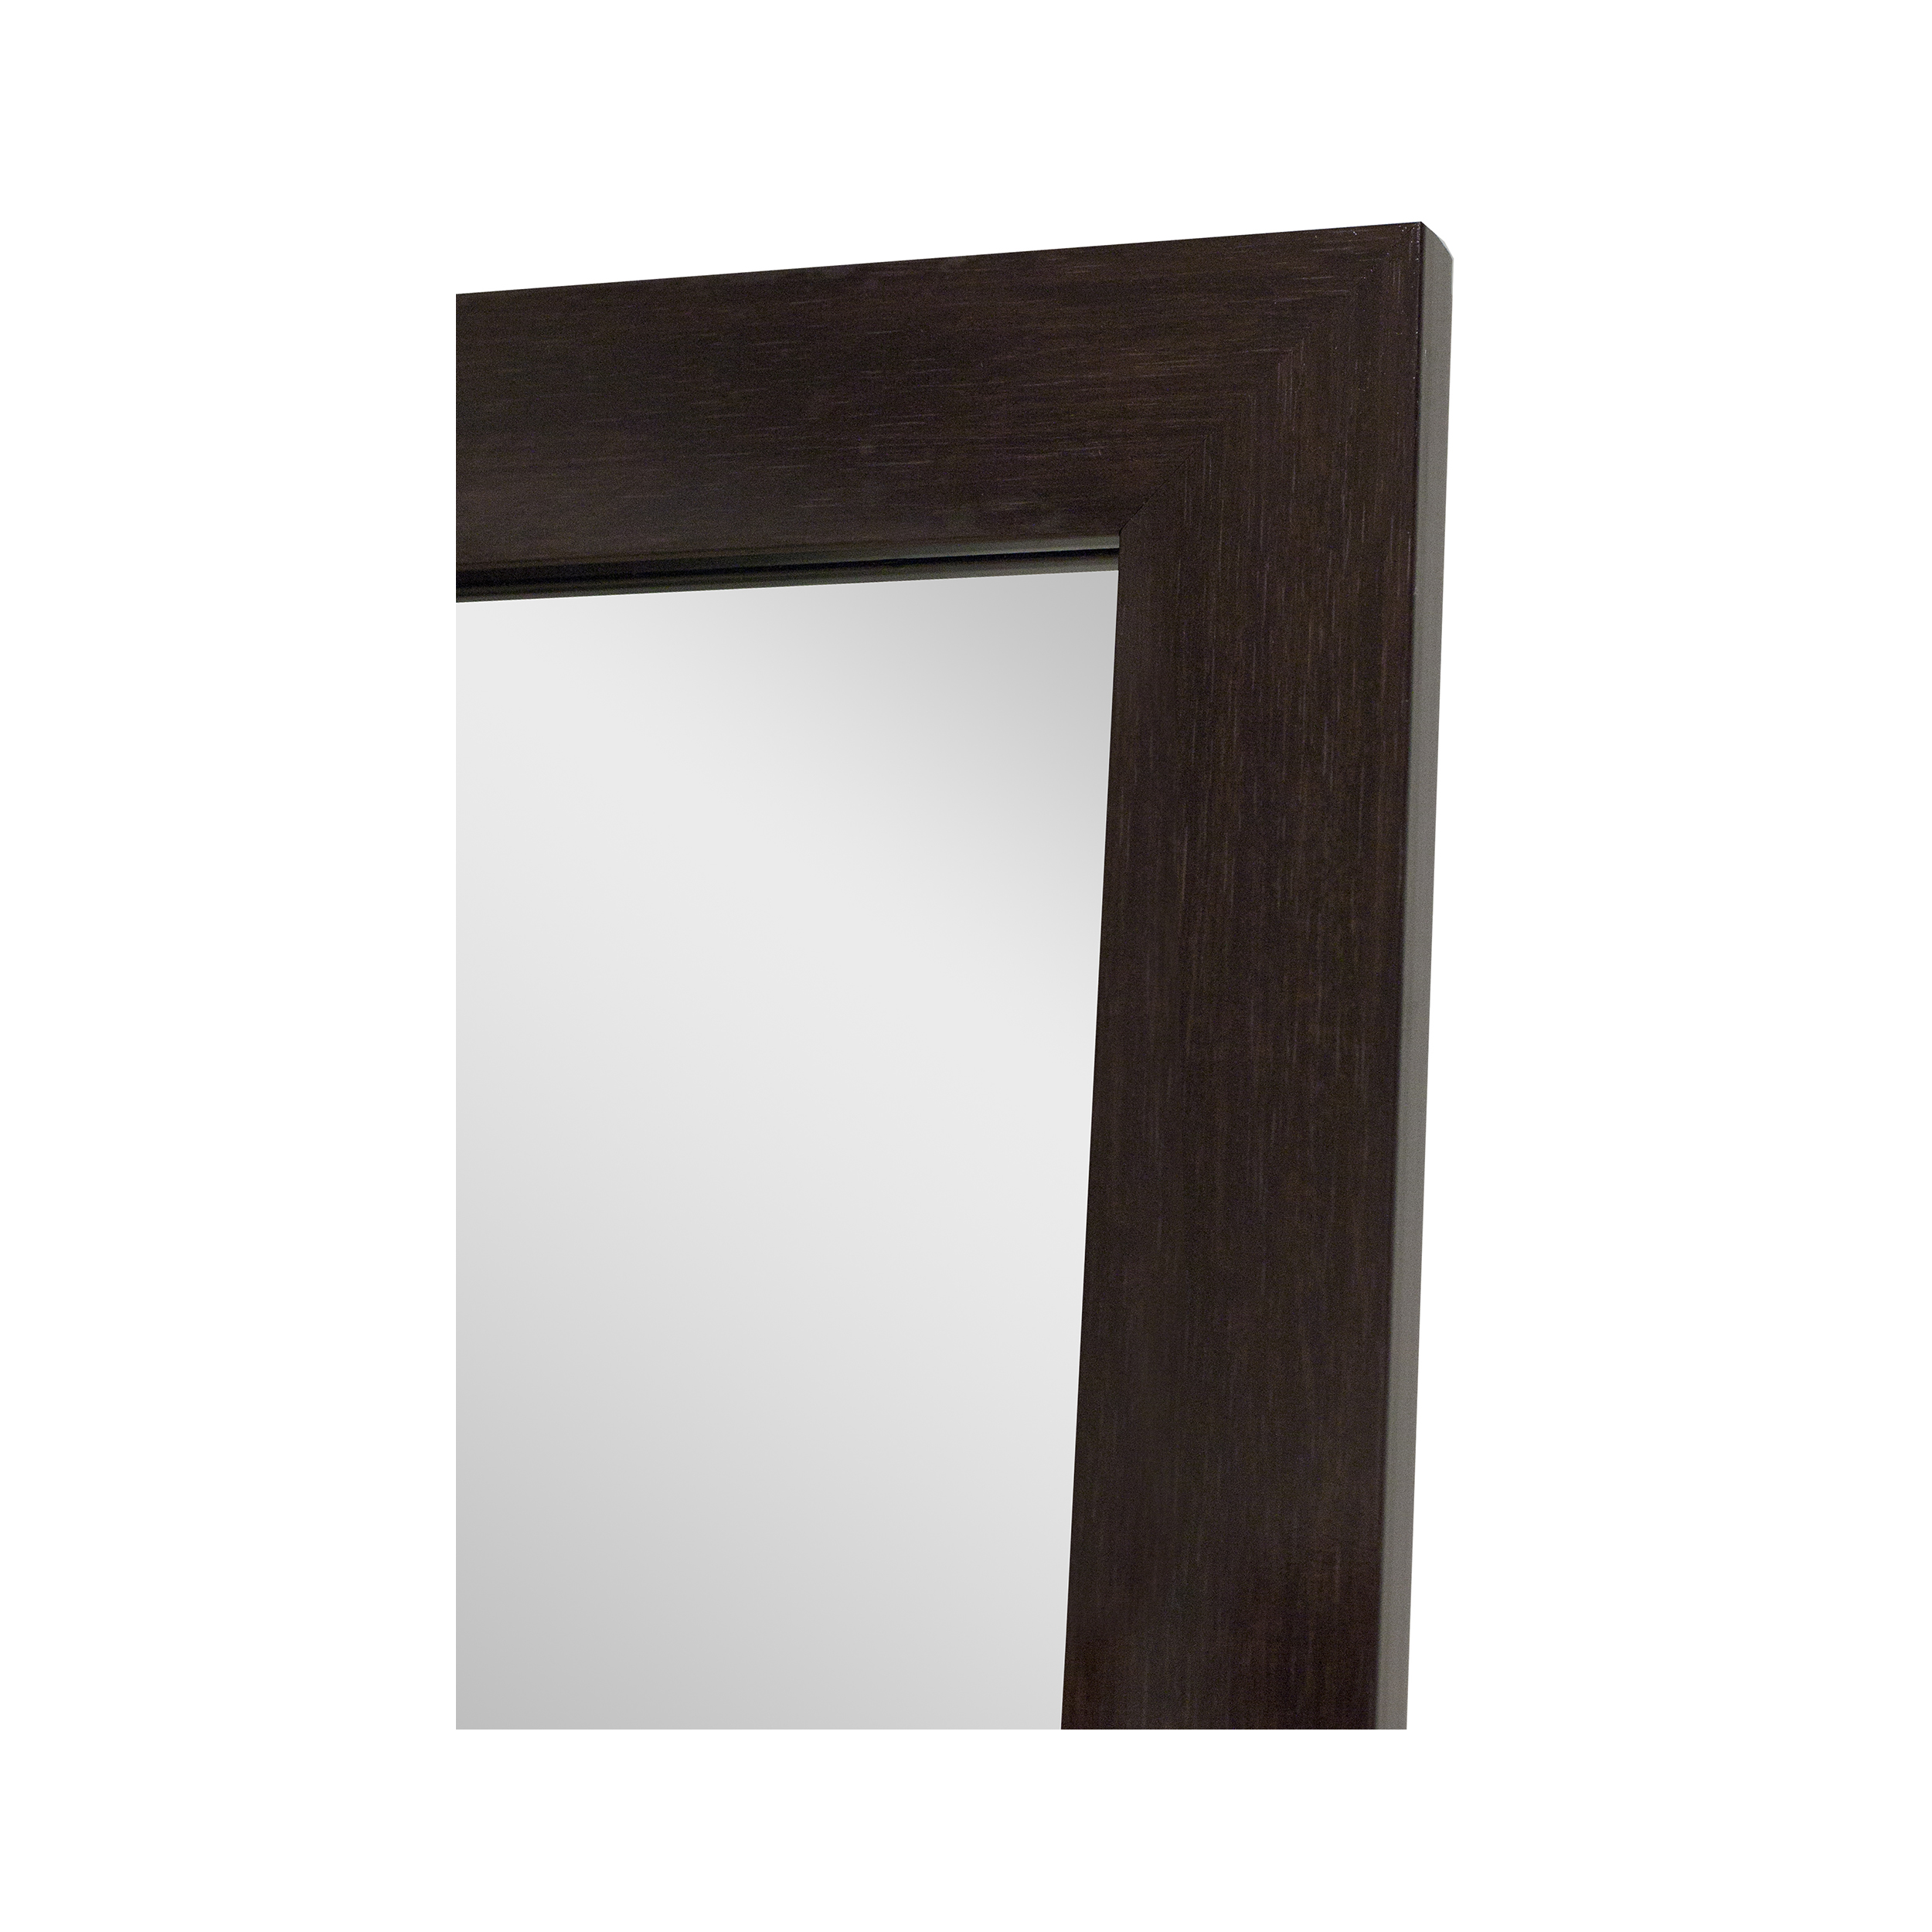 "Ipe Brown Non-Beveled Vanity (24"" x 84"")"